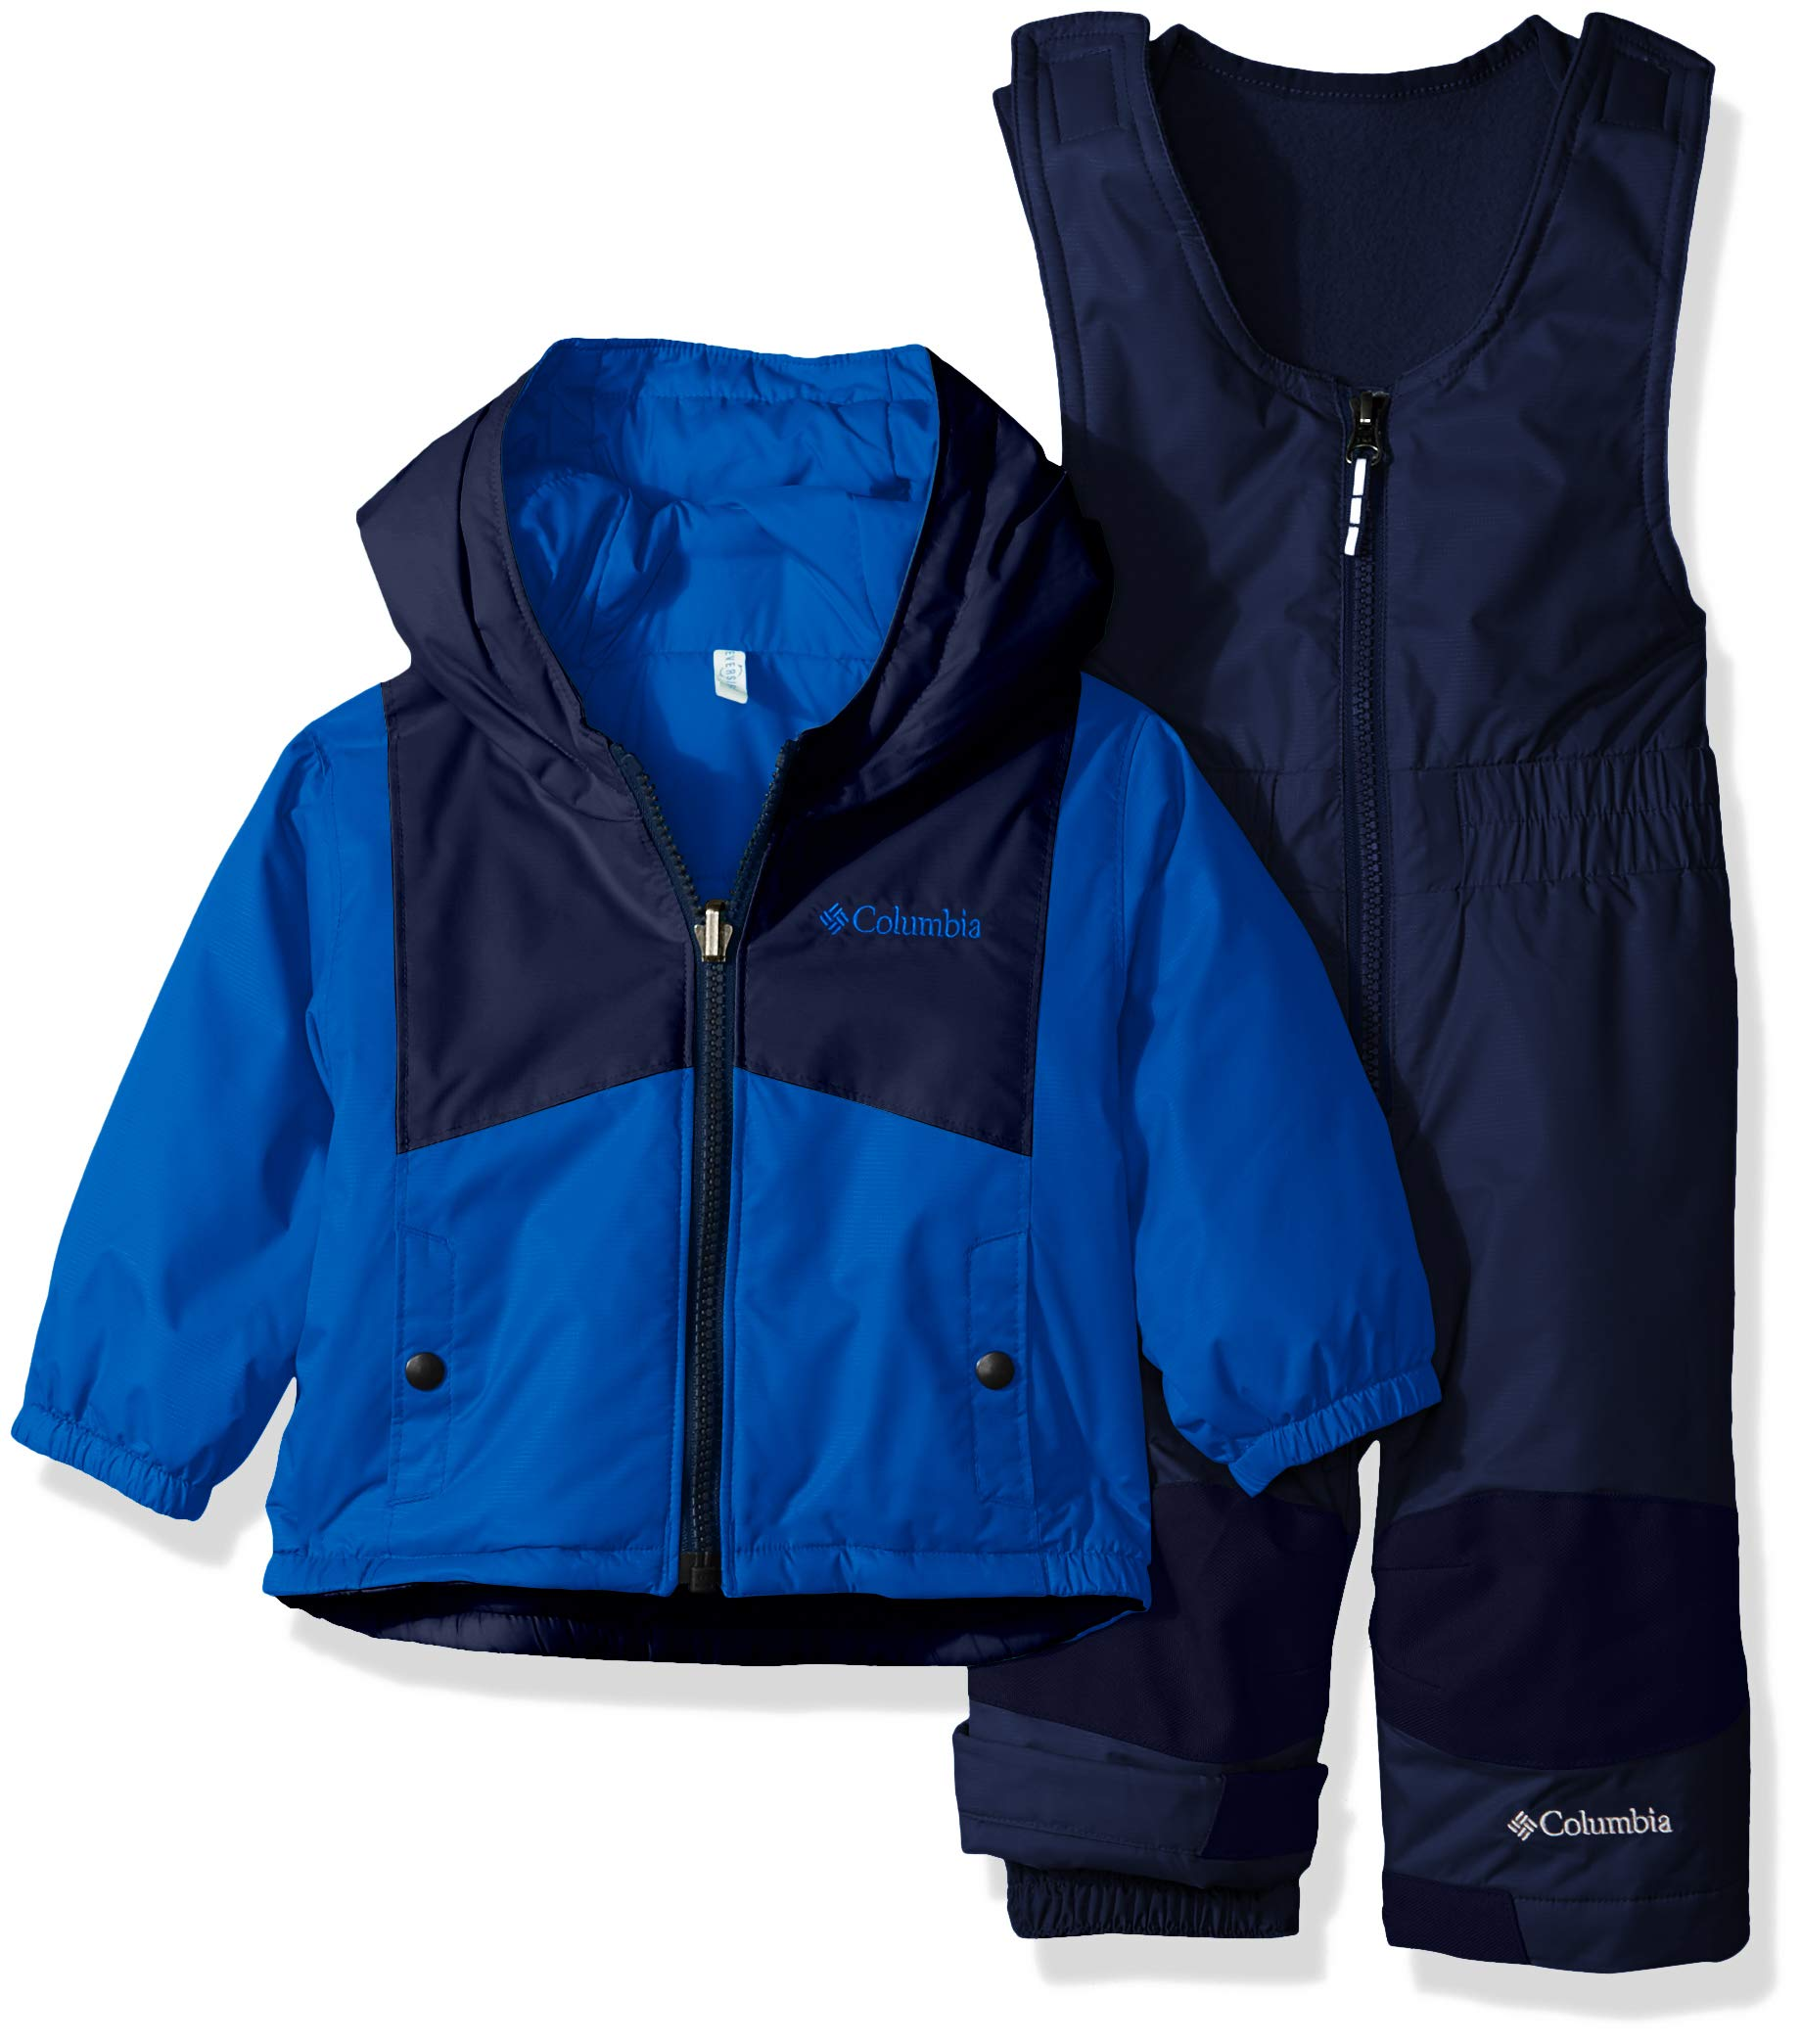 Columbia Youth Unisex Toddler Double Flake Set, Waterproof, Insulated